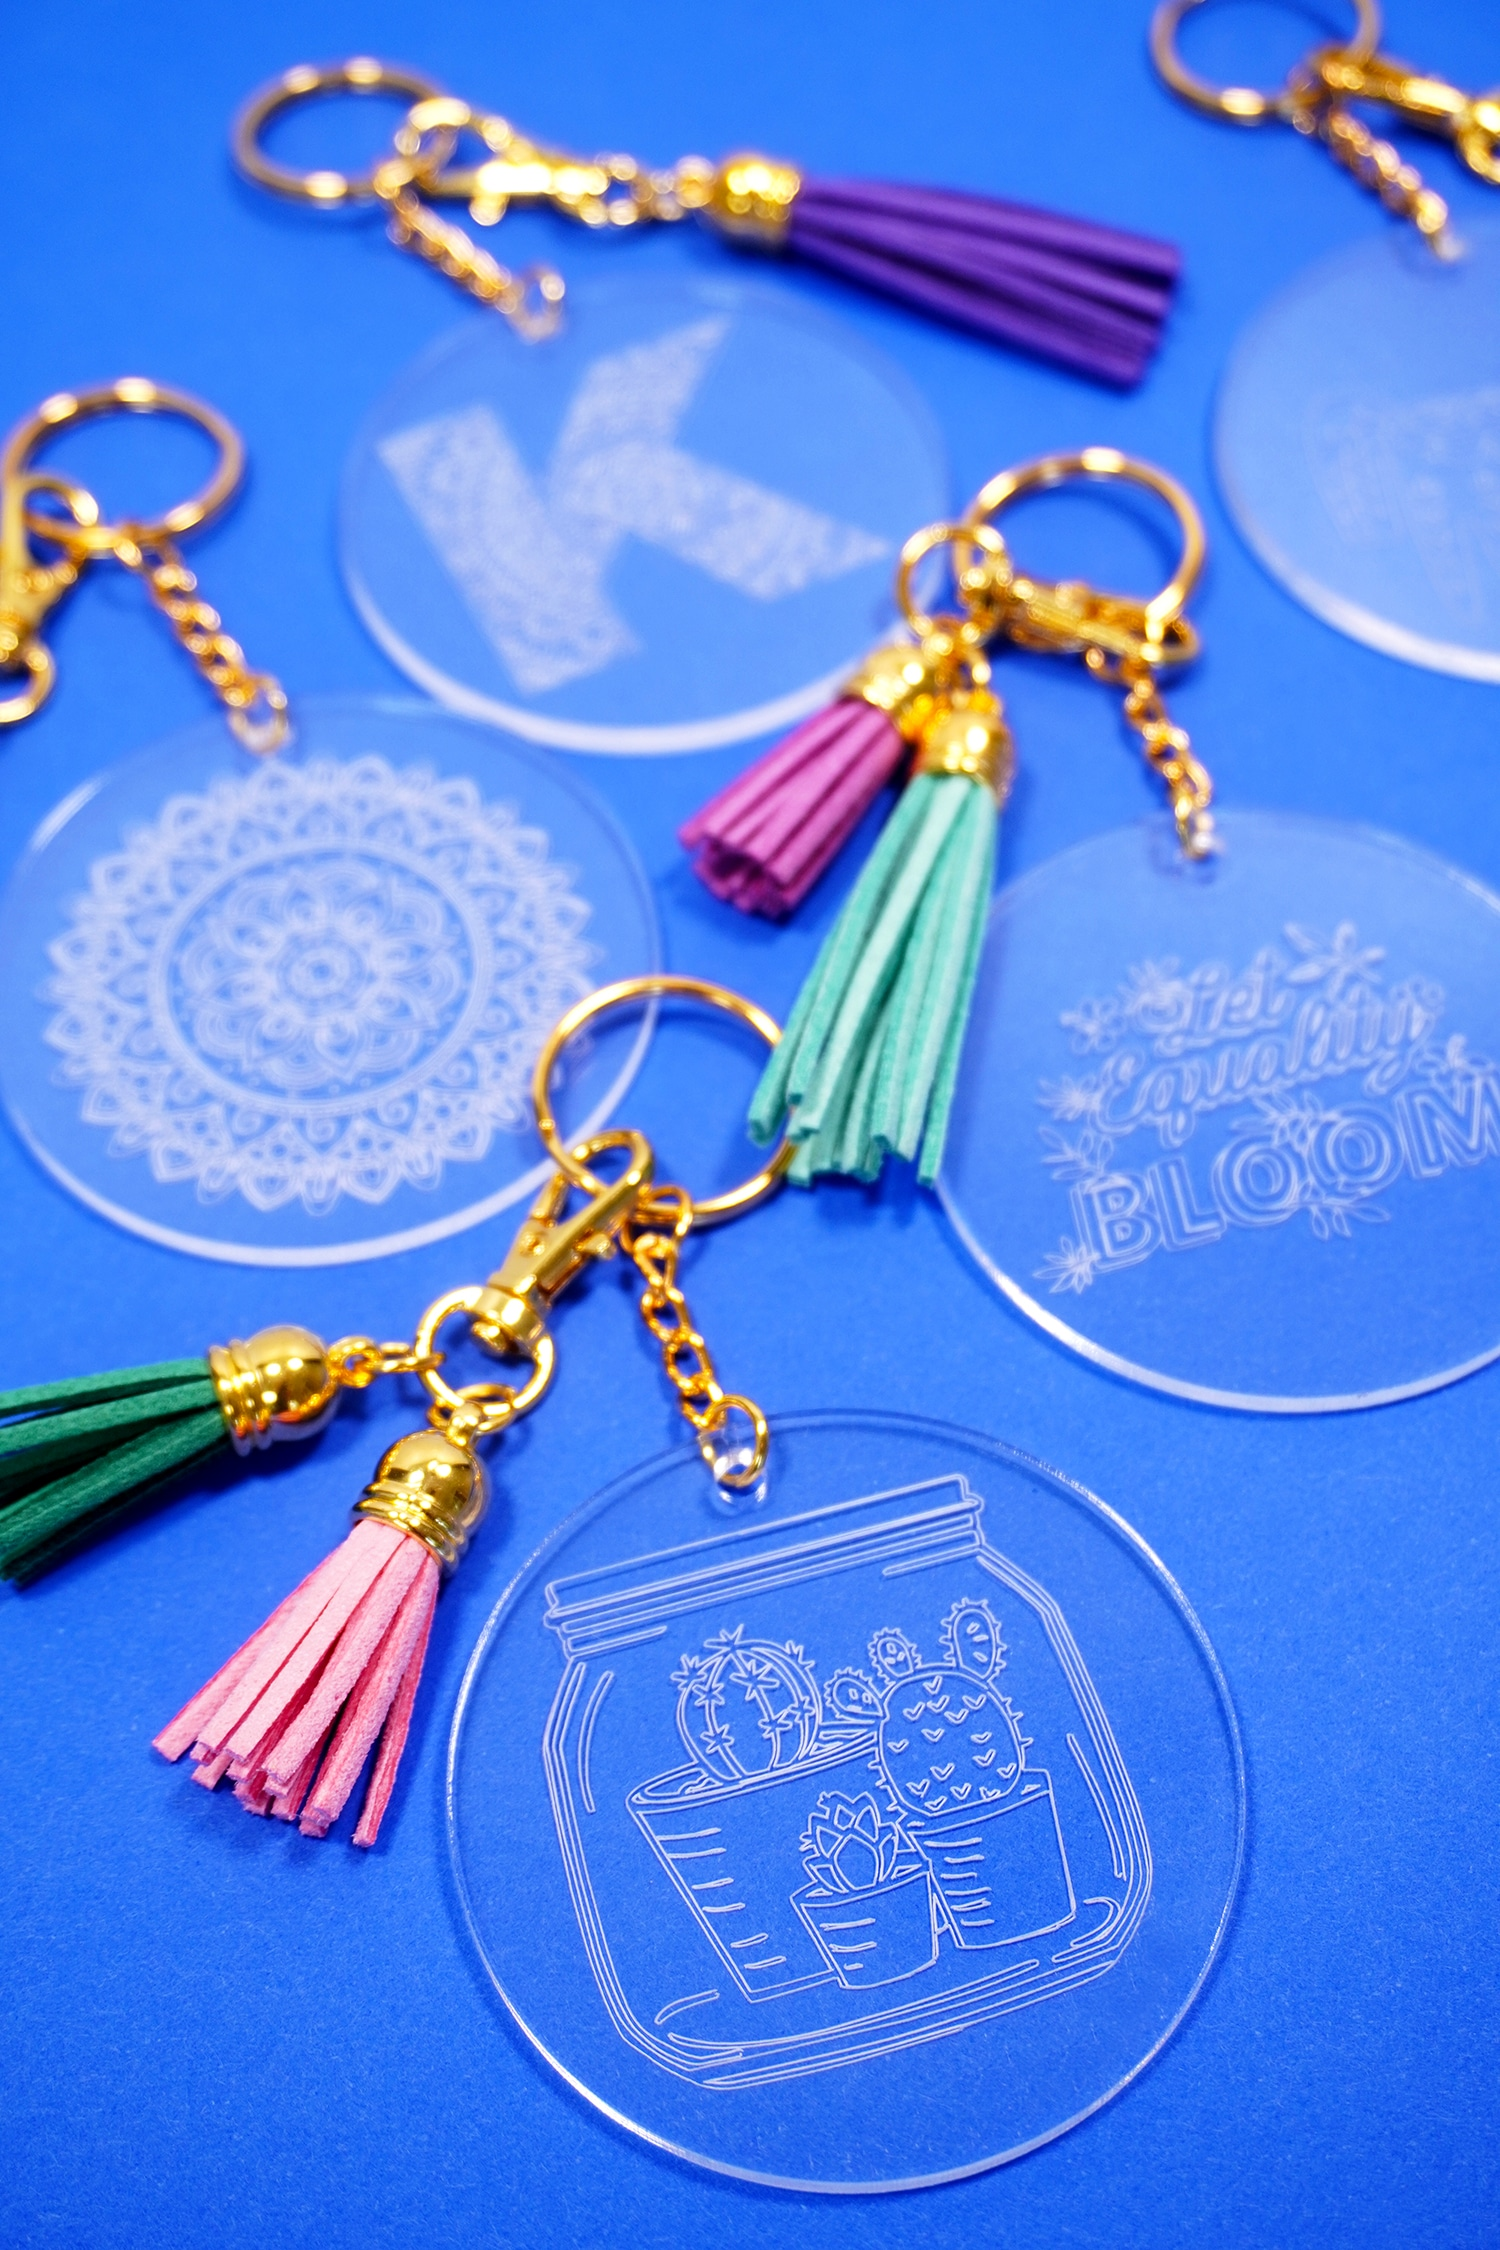 Engraved acrylic keychains with tassels on a blue background made with Cricut Maker Engraving Tool